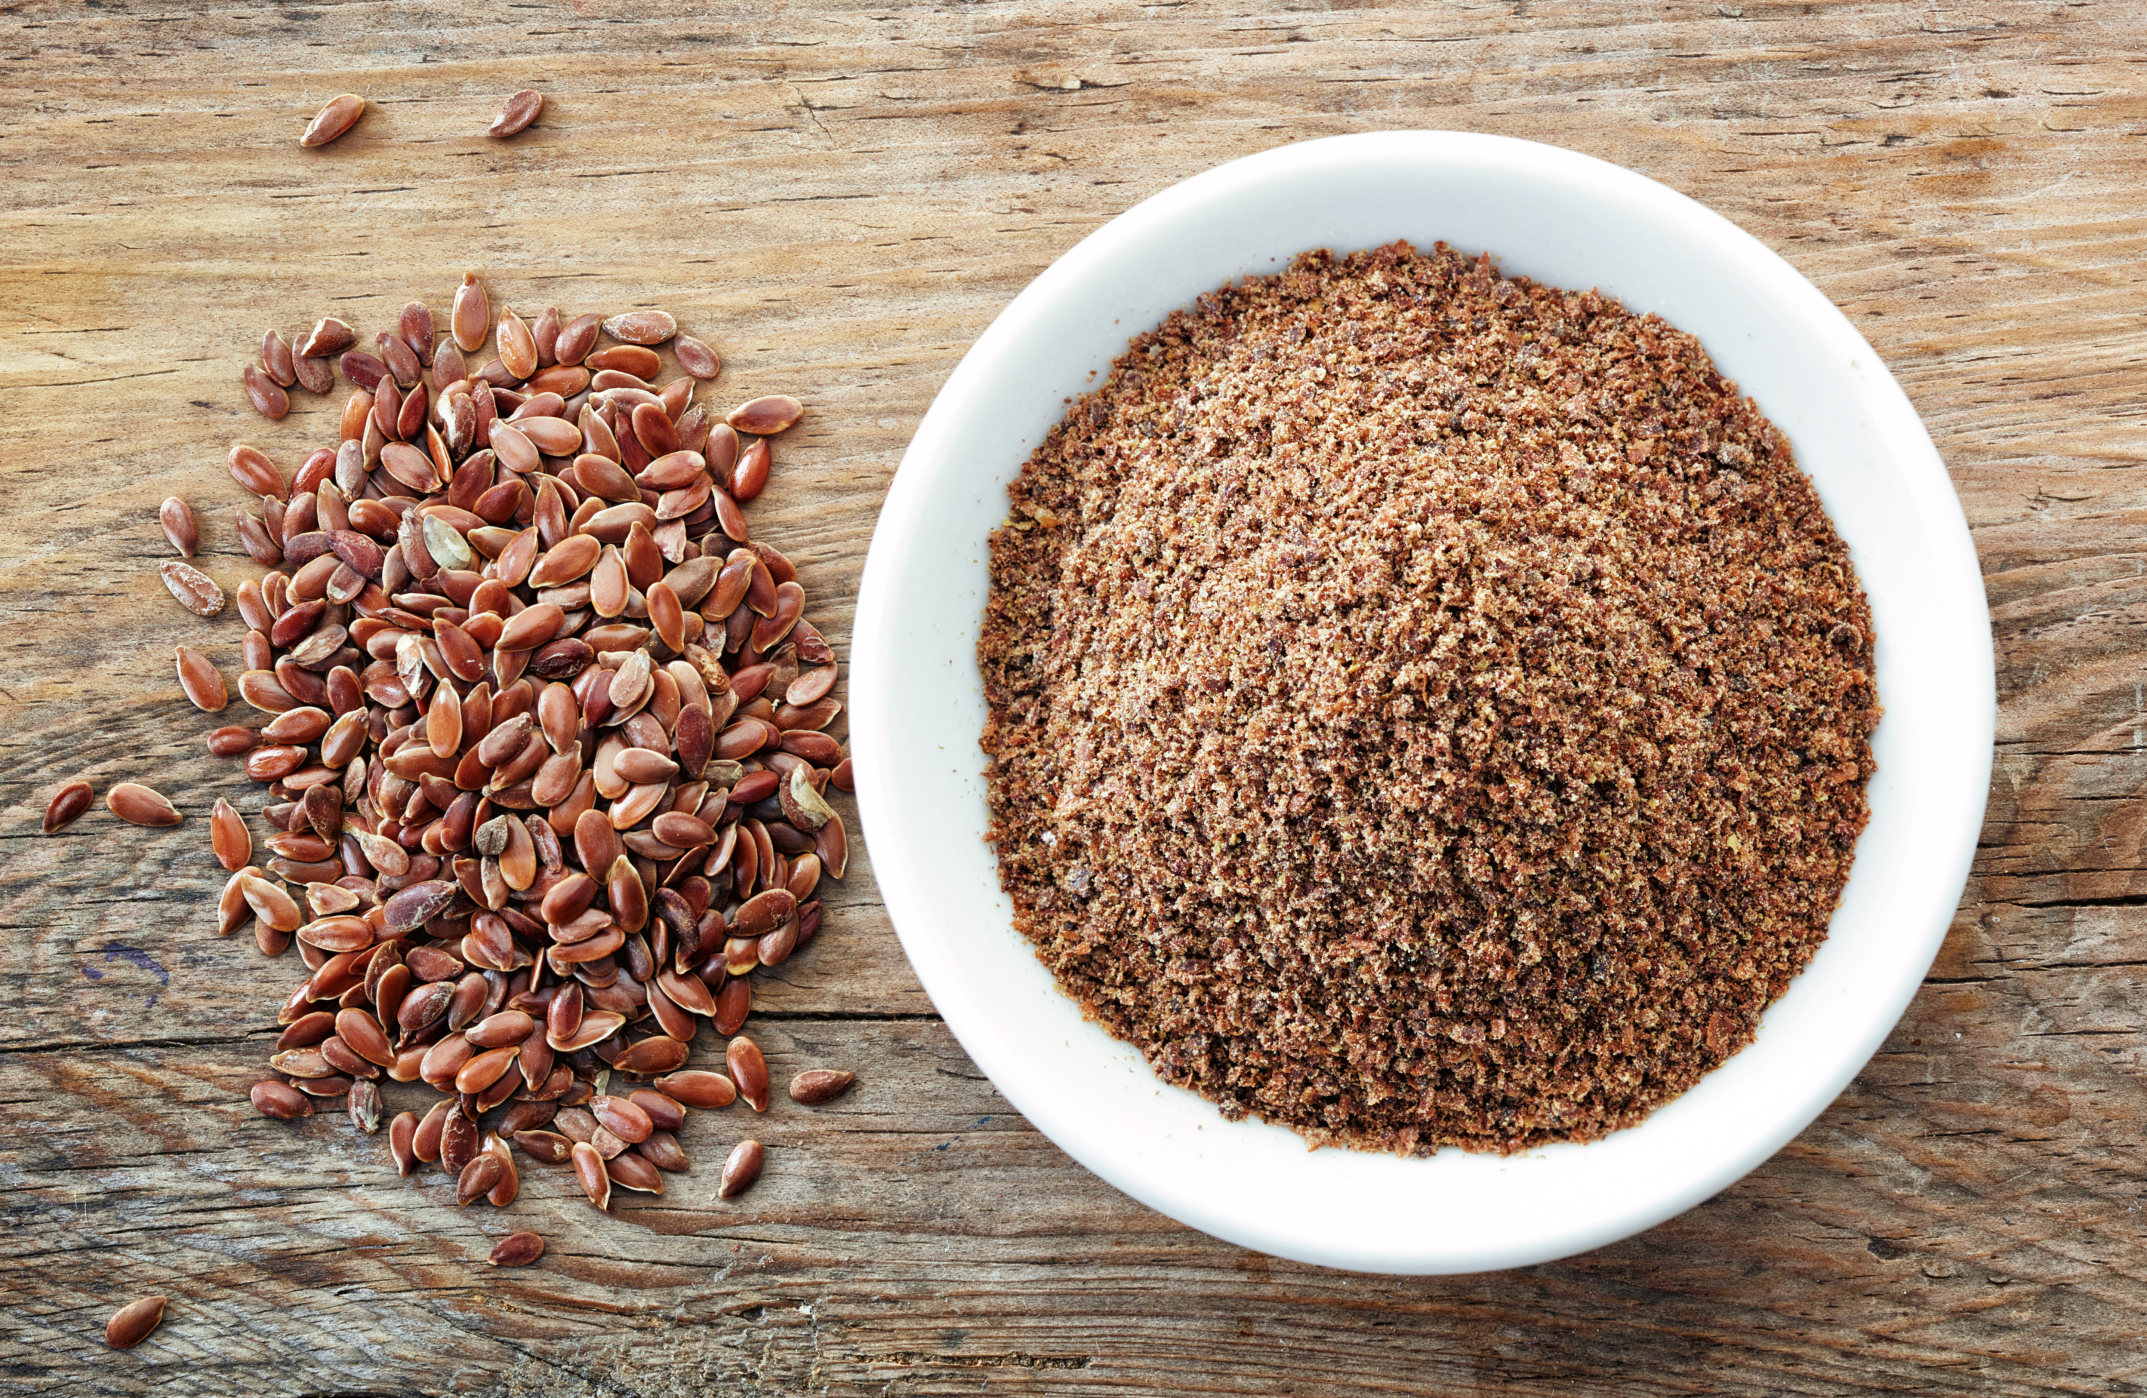 Flax Seed Egg Substitute